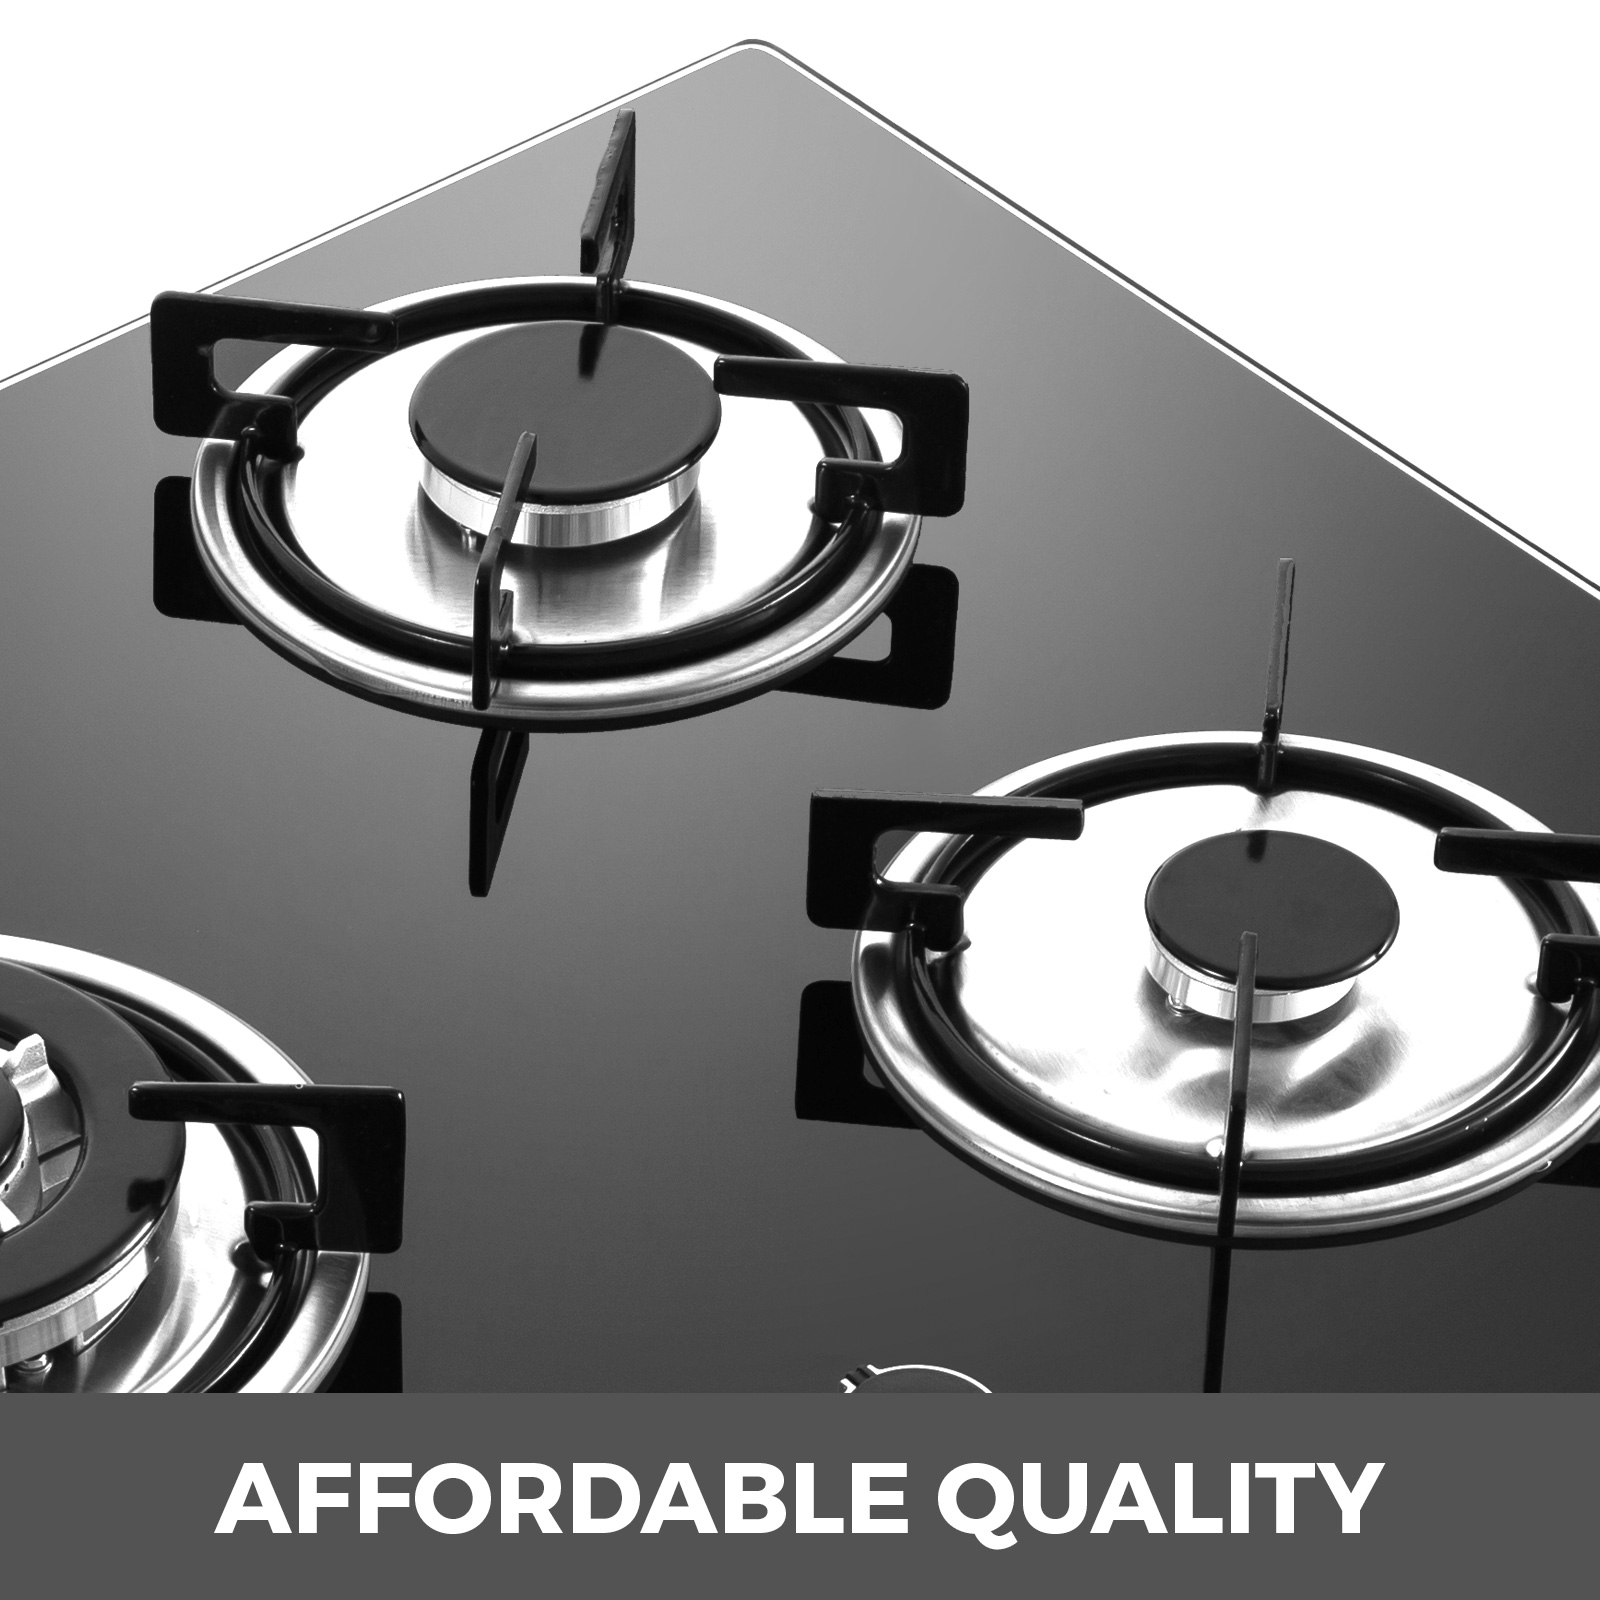 Tempered-Glass-4-Burners-Stove-Gas-Cooktop-iron-grates-LPG-amp-LNG-Gas-St-Steel thumbnail 3